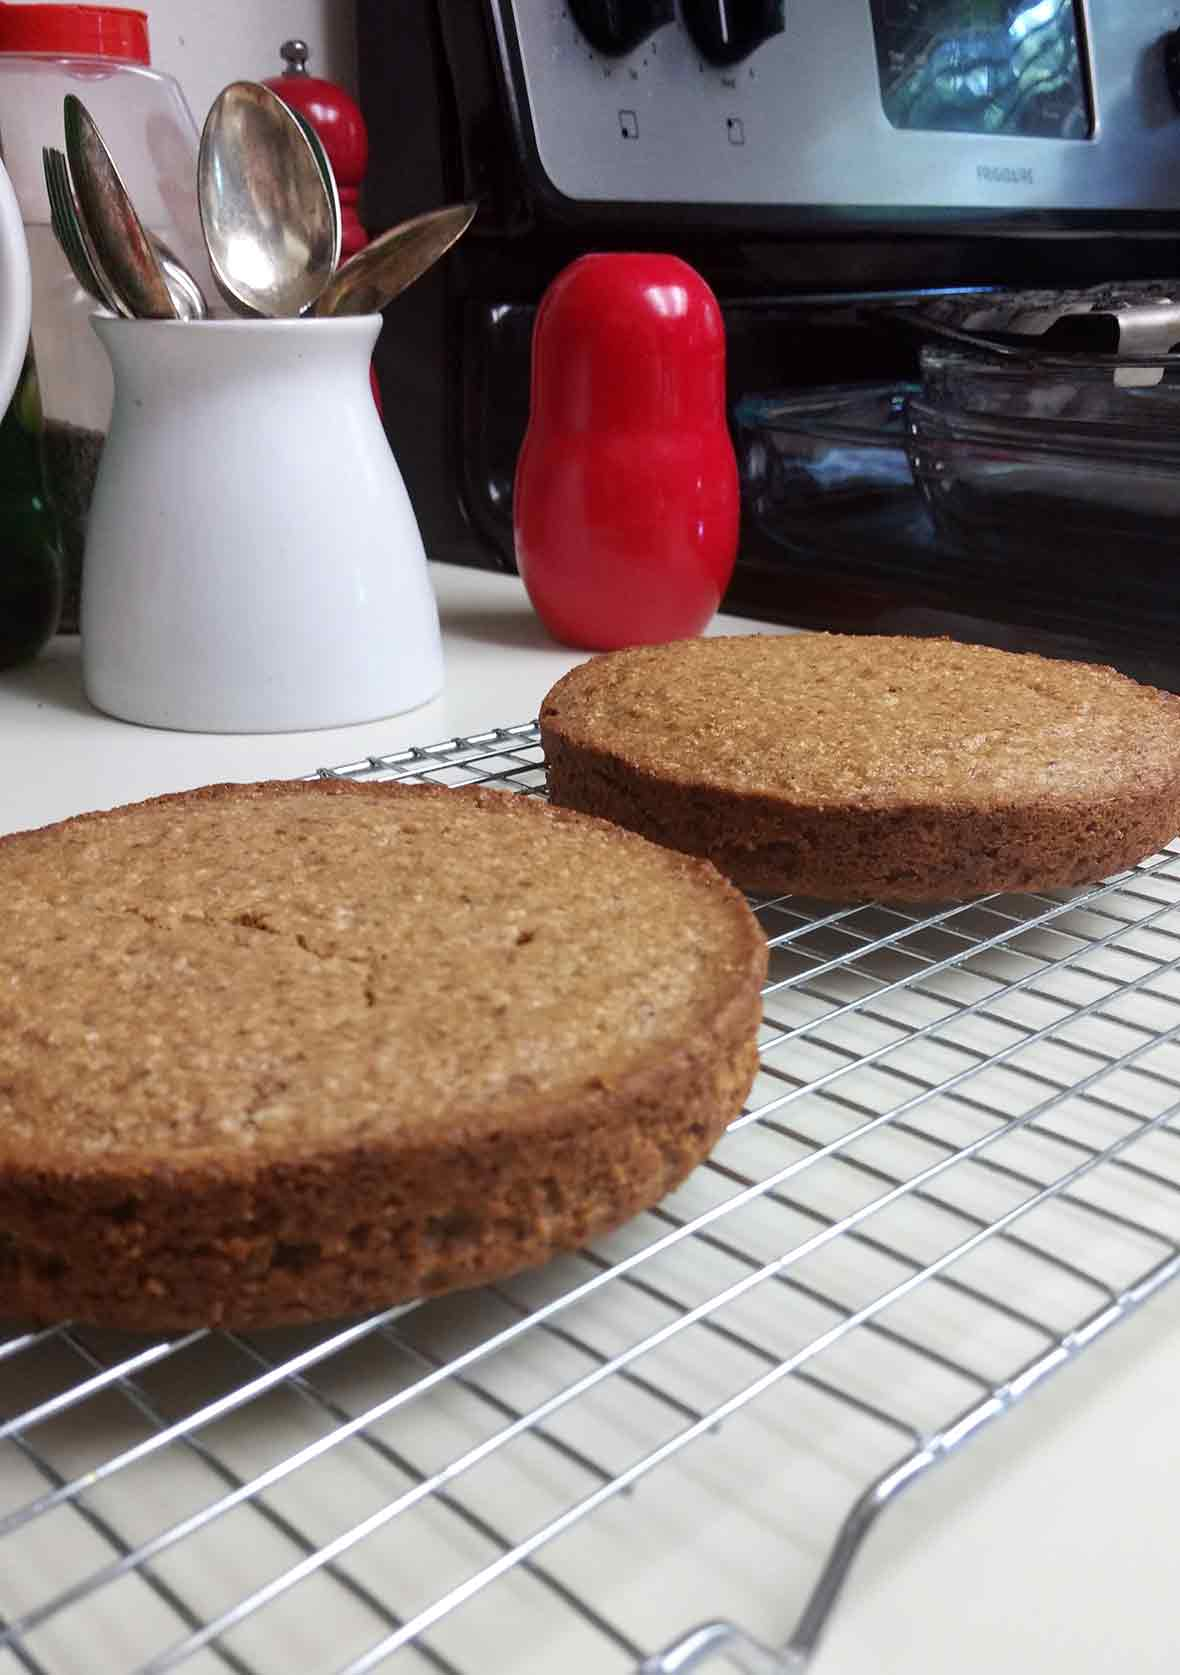 Two flourless almond cakes on a cooling rack on a kitchen counter